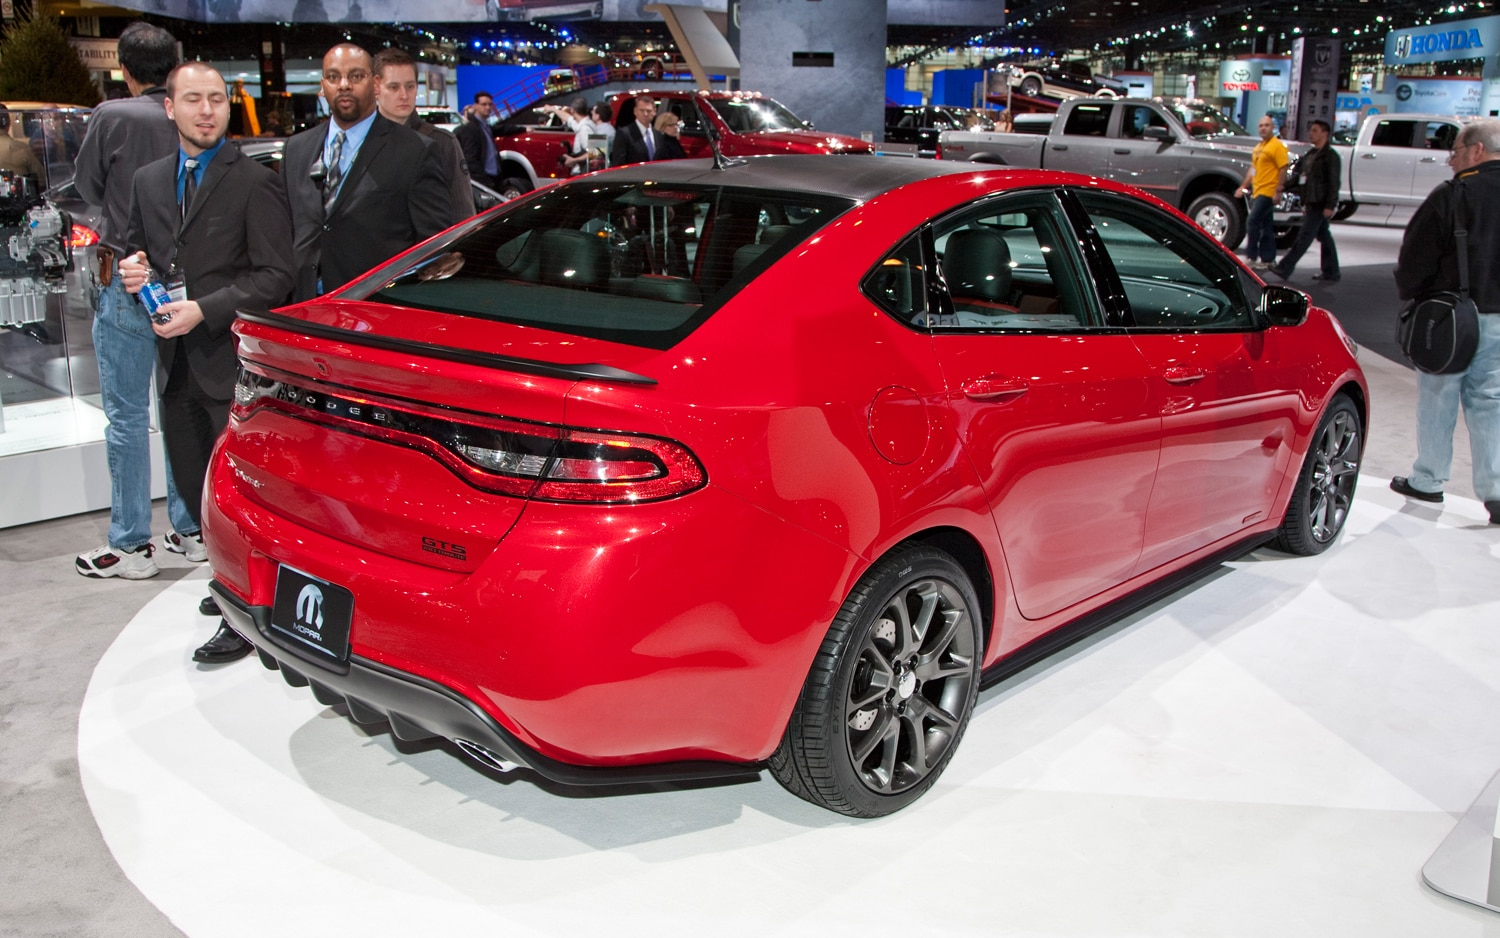 2013 Dodge Dart GTS 210 Tribute Rear Right View1